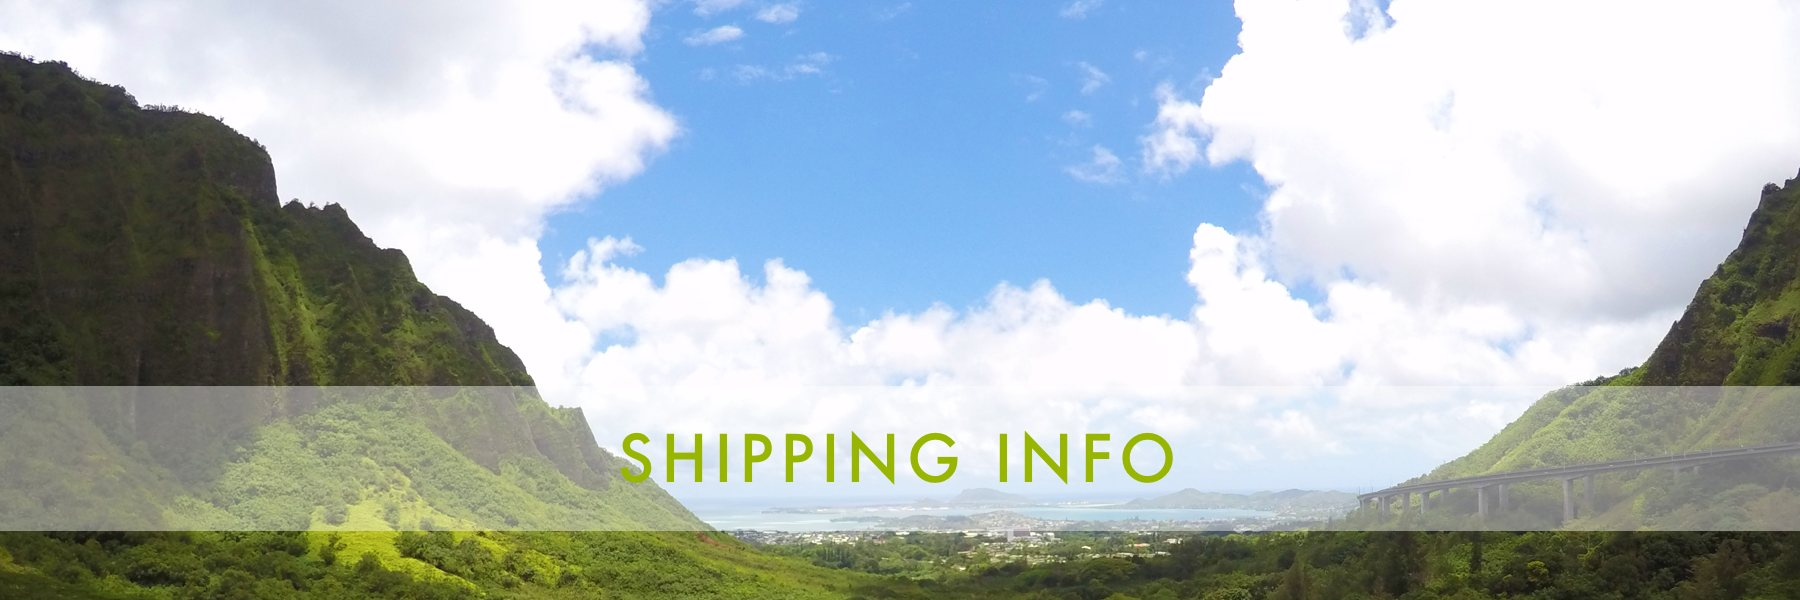 Papaya Sun - Shipping Info